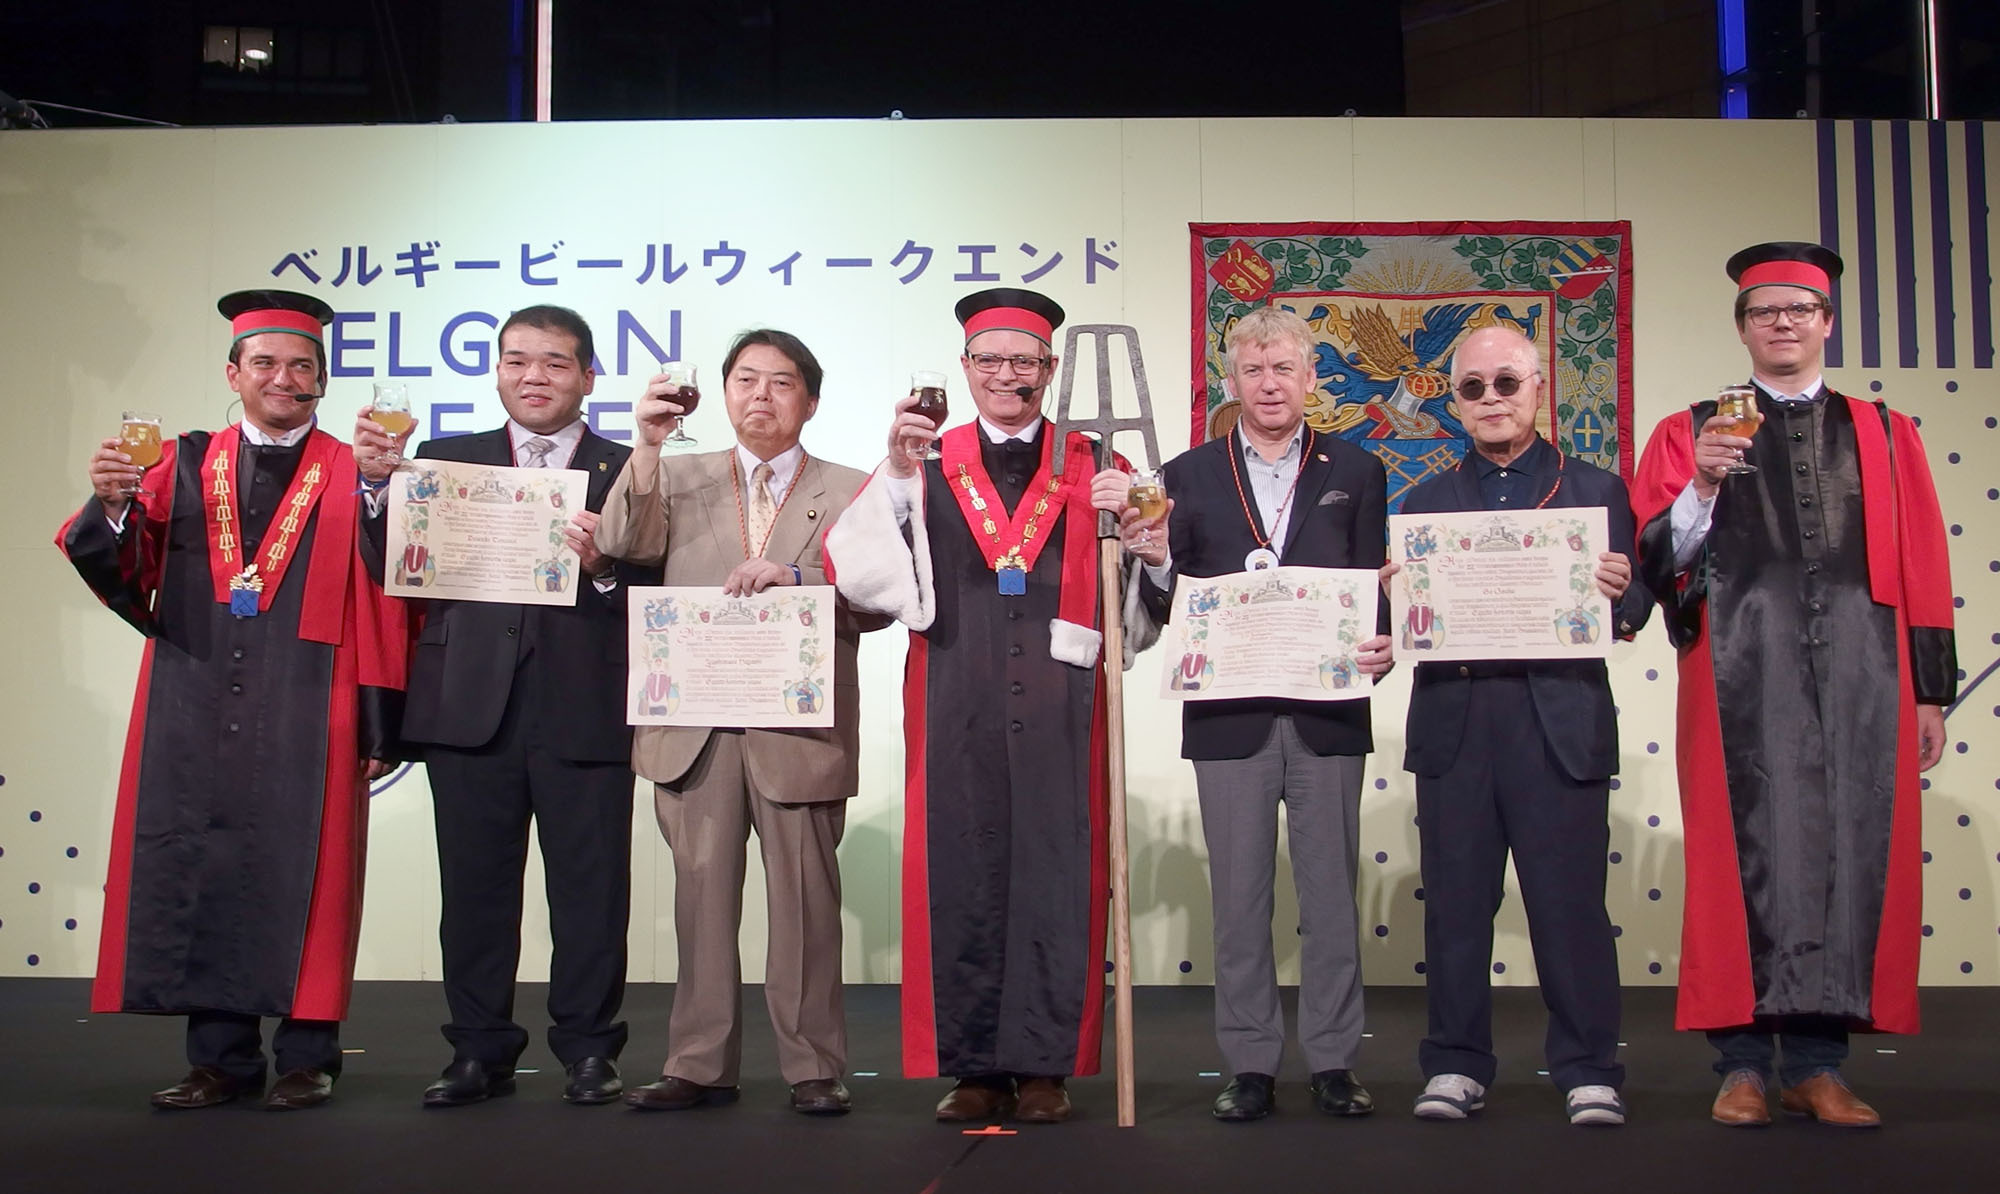 "The four new members of the Knighthood of the Brewers' Mashstaff (from left, holding certificates) former ozeki Tochiazuma; former agriculture minister, and President of the Japan-Begium Parliamentary Friendship League Yoshimasa Hayashi; Belgium's Ambassador to Japan Gunther Sleeuwagen; and Writer Go Osaka pose with members of the knighthood during a ceremony at ""Belgian Beer Weekend 2016,"" which runs through Sept. 25, at Roppongi Hills Arena in Tokyo on Sept. 16. 